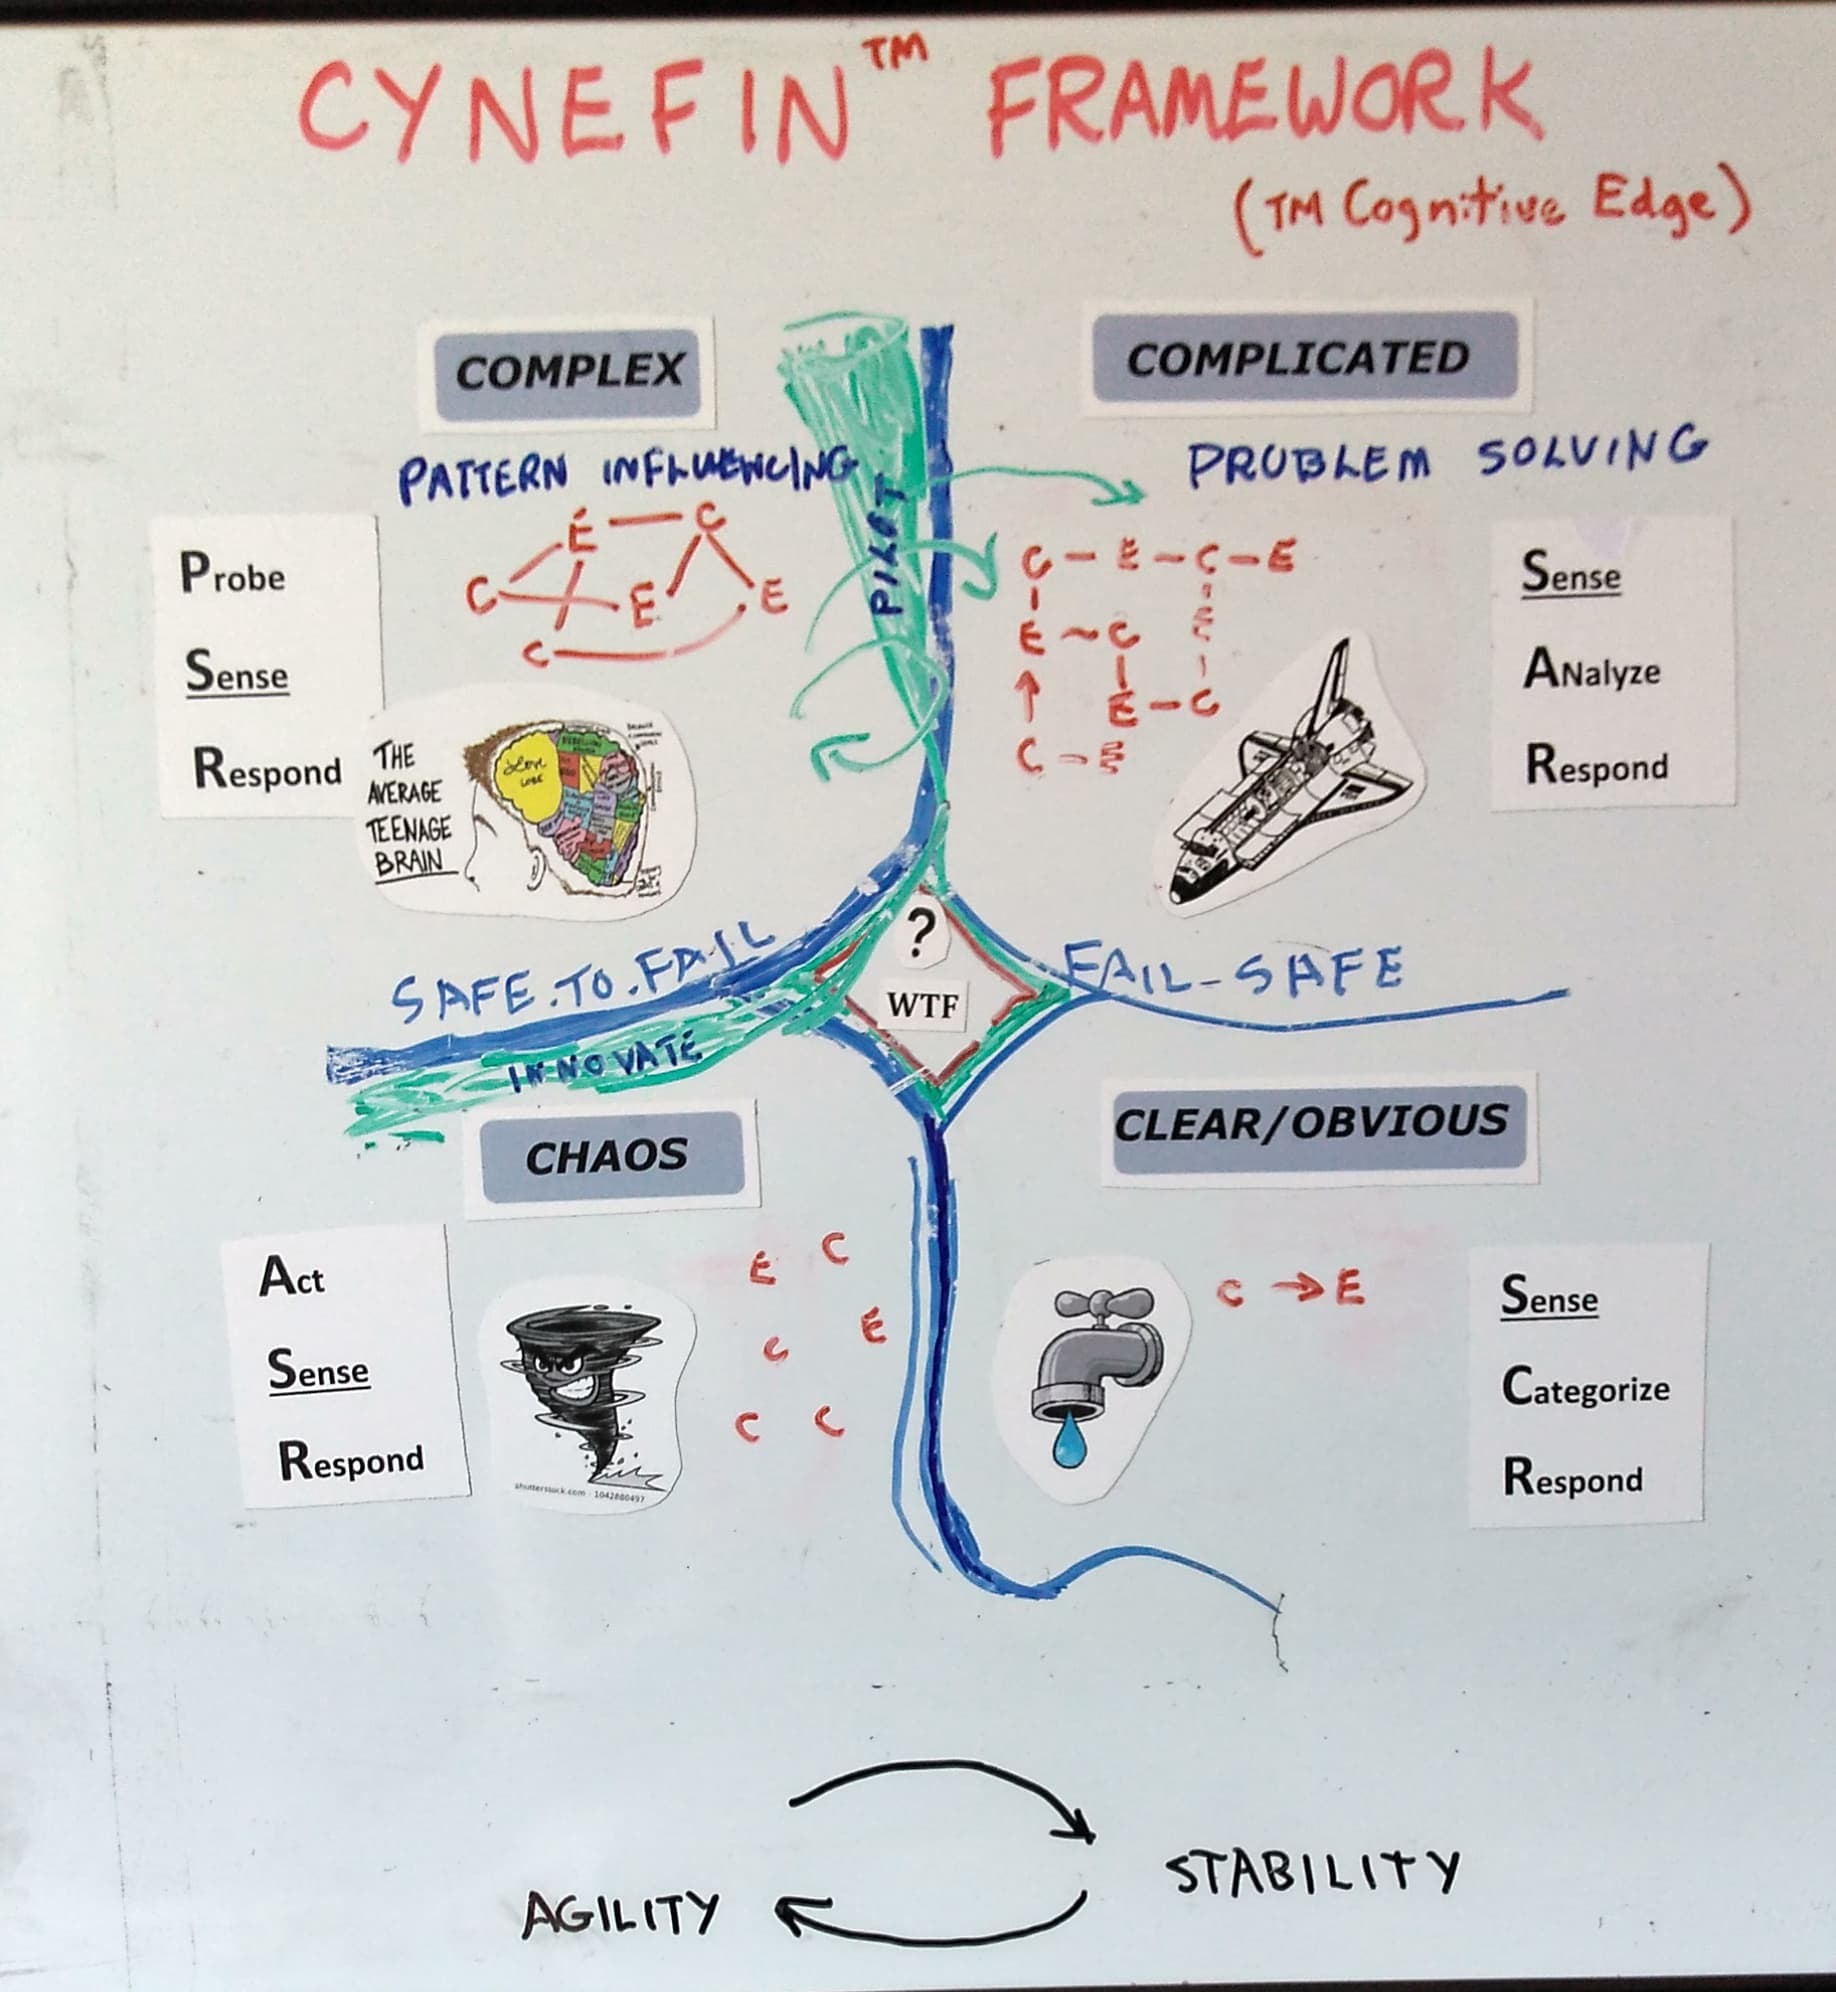 A diagram of the Cynefin Framework